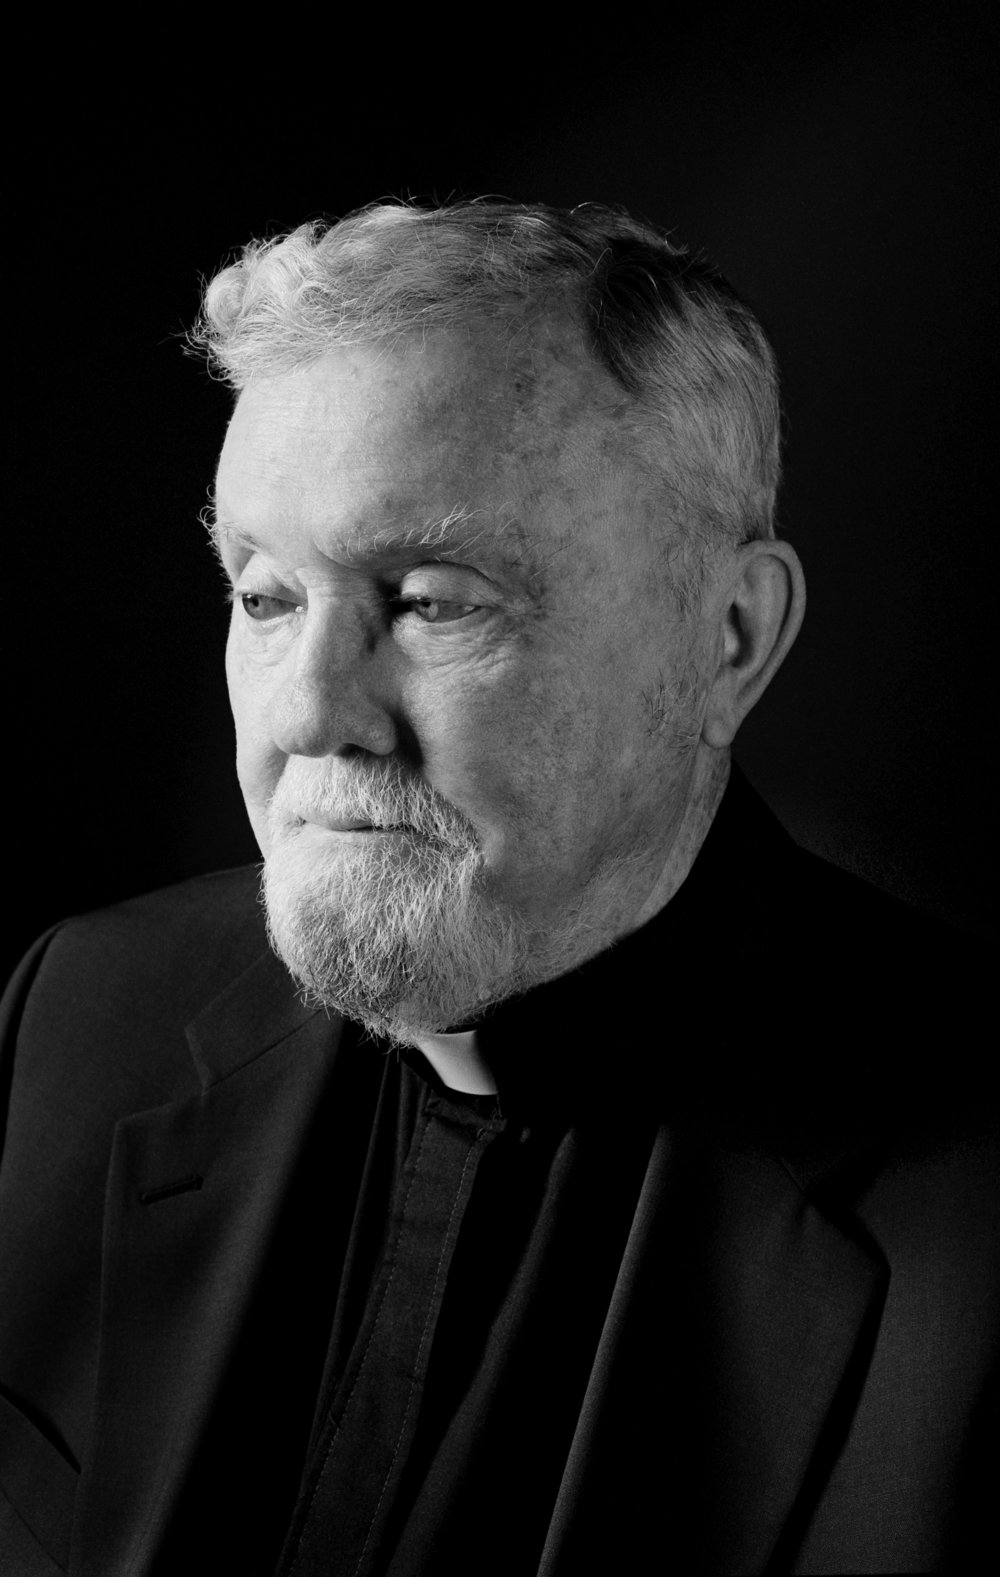 Inside the Film: Fr. Connolly, S.J.